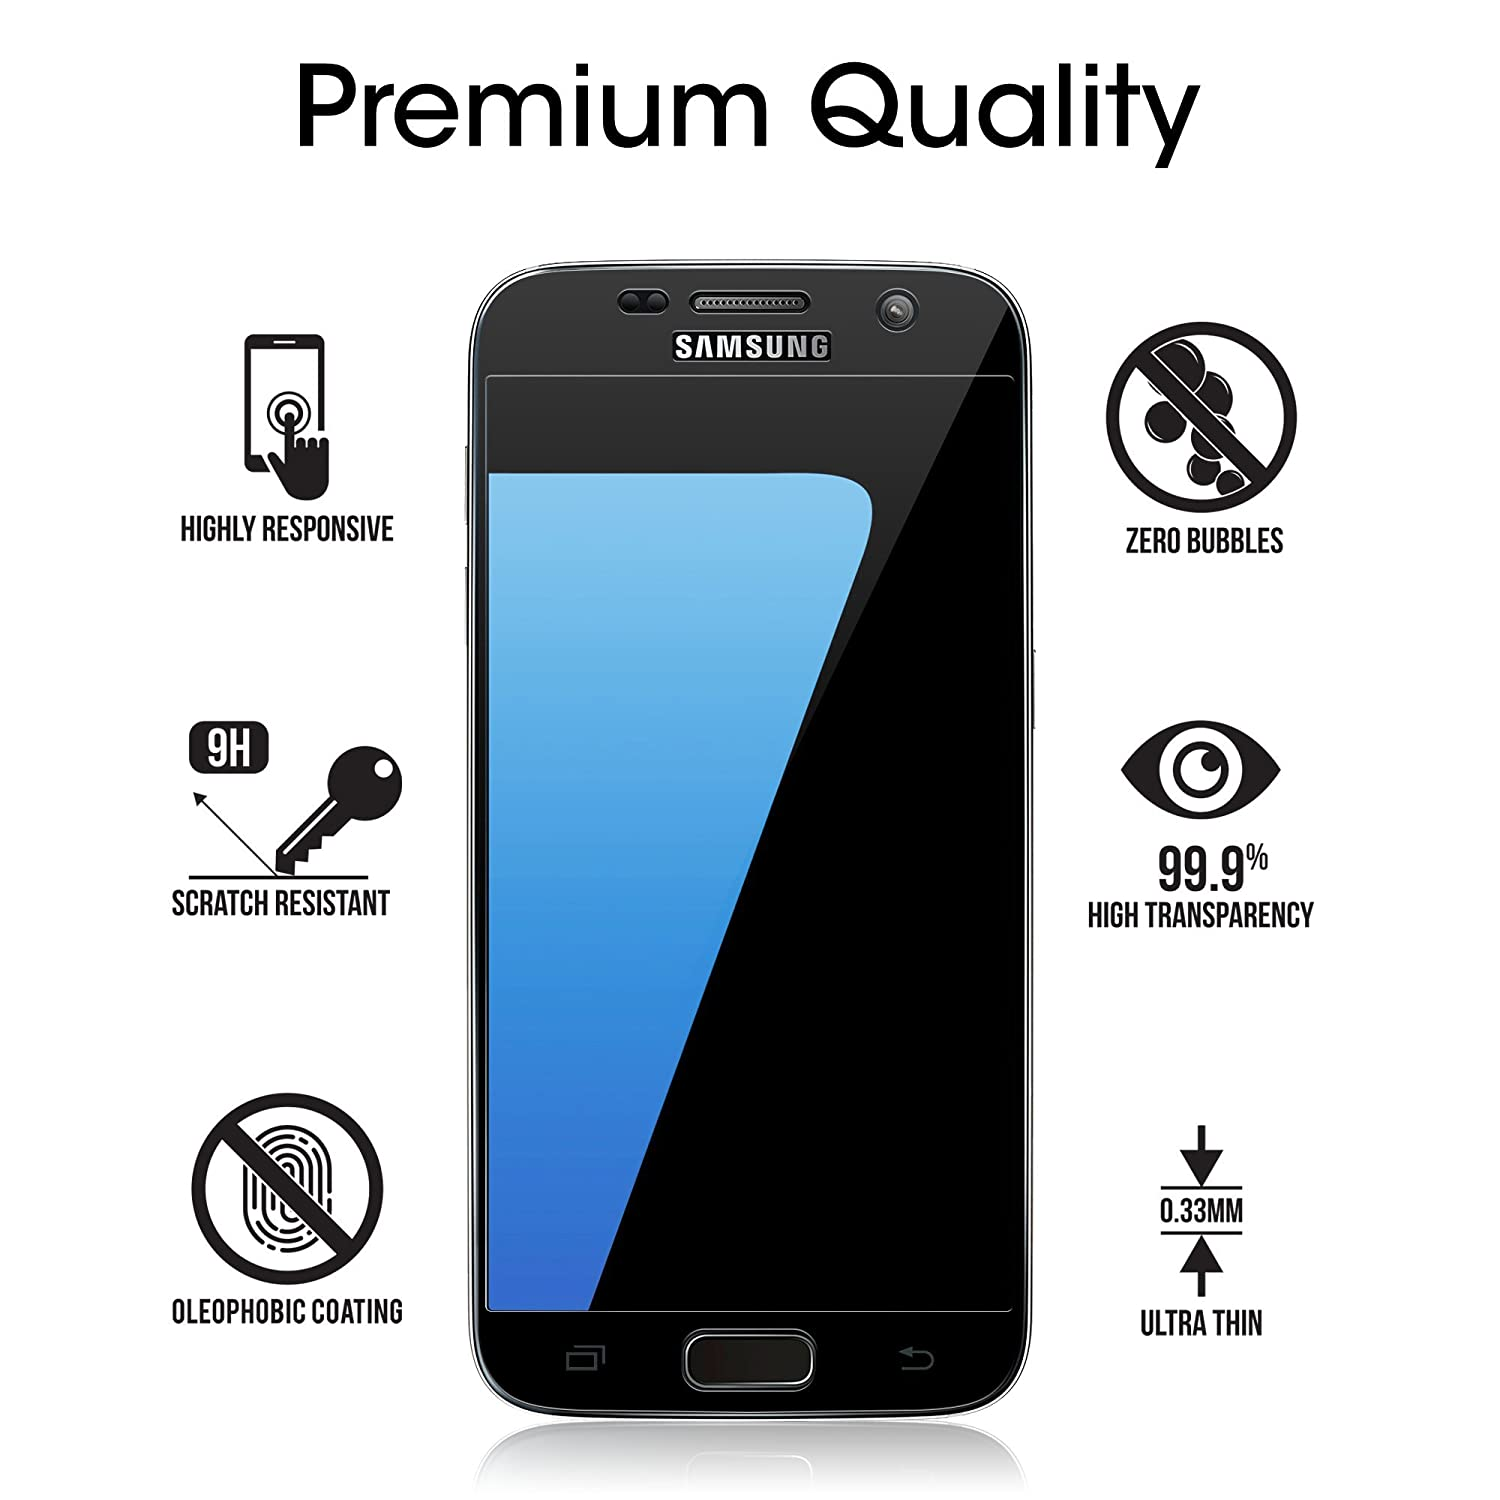 Details about Samsung Galaxy S7 amFilm Full Cover Tempered Glass Screen  Protector (Black)